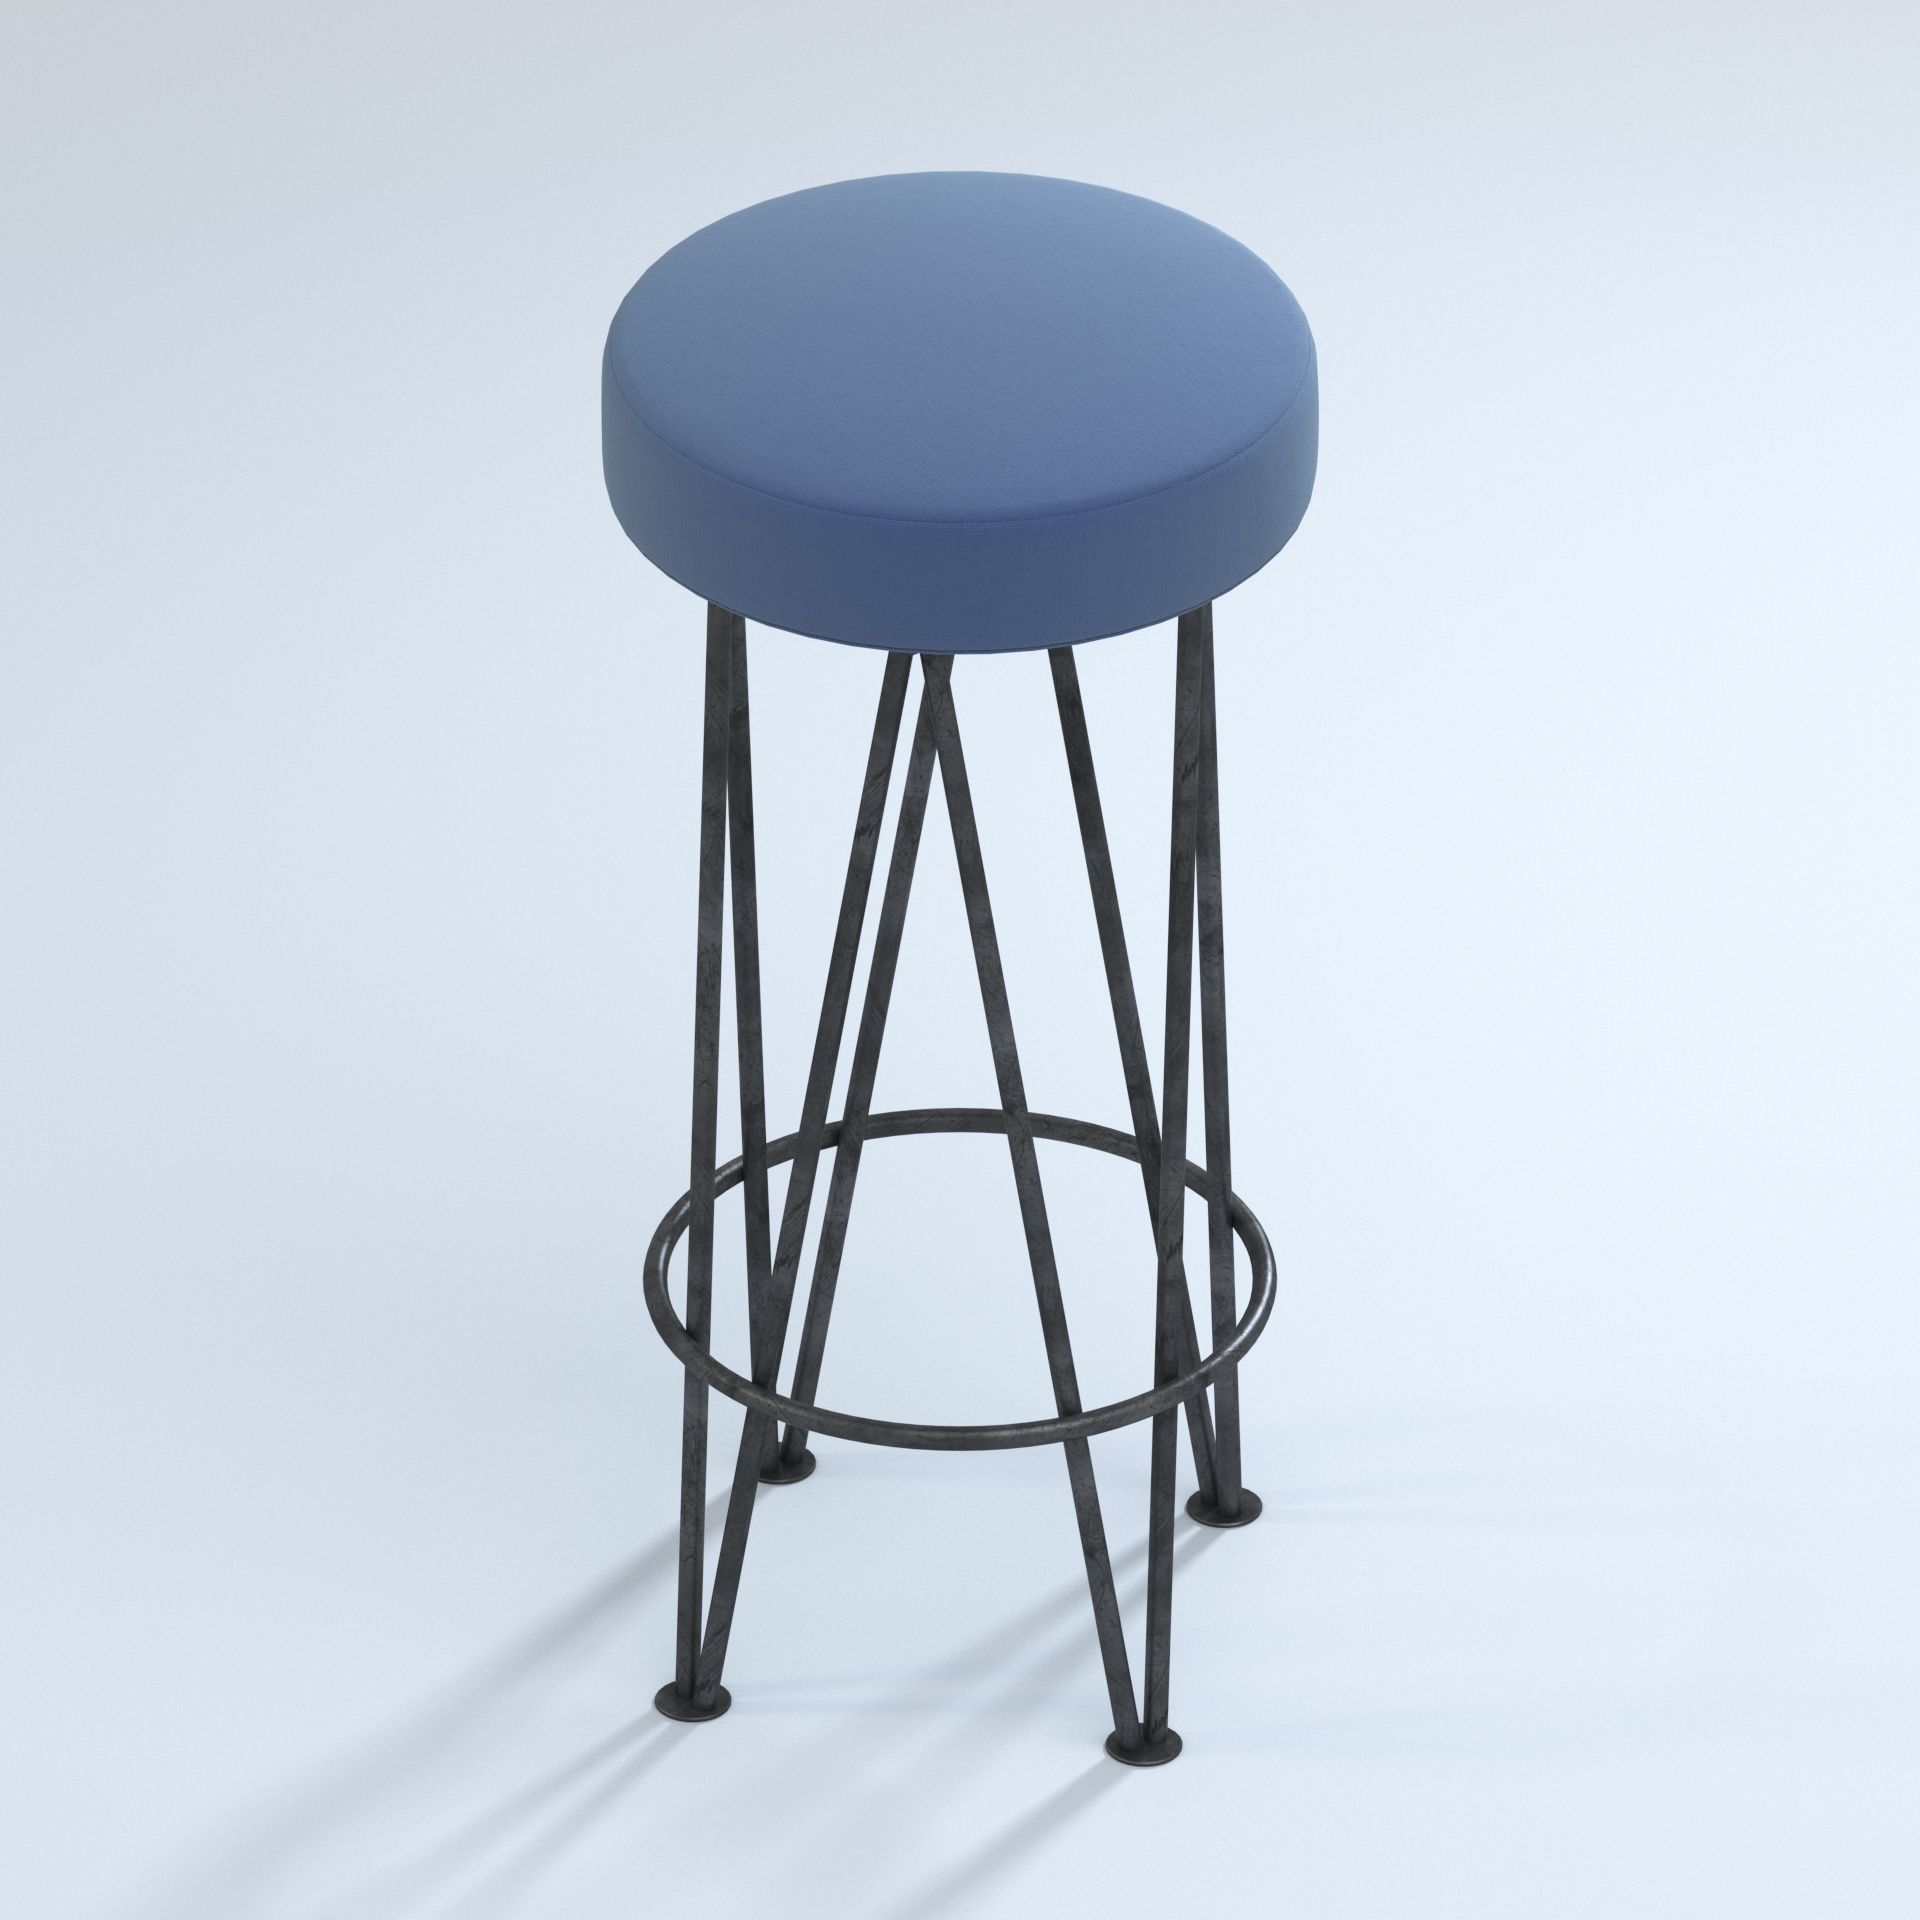 Brilliant Mr Brown Lorca Modern Black Hairpin Counter Stool 3D Model Pdpeps Interior Chair Design Pdpepsorg